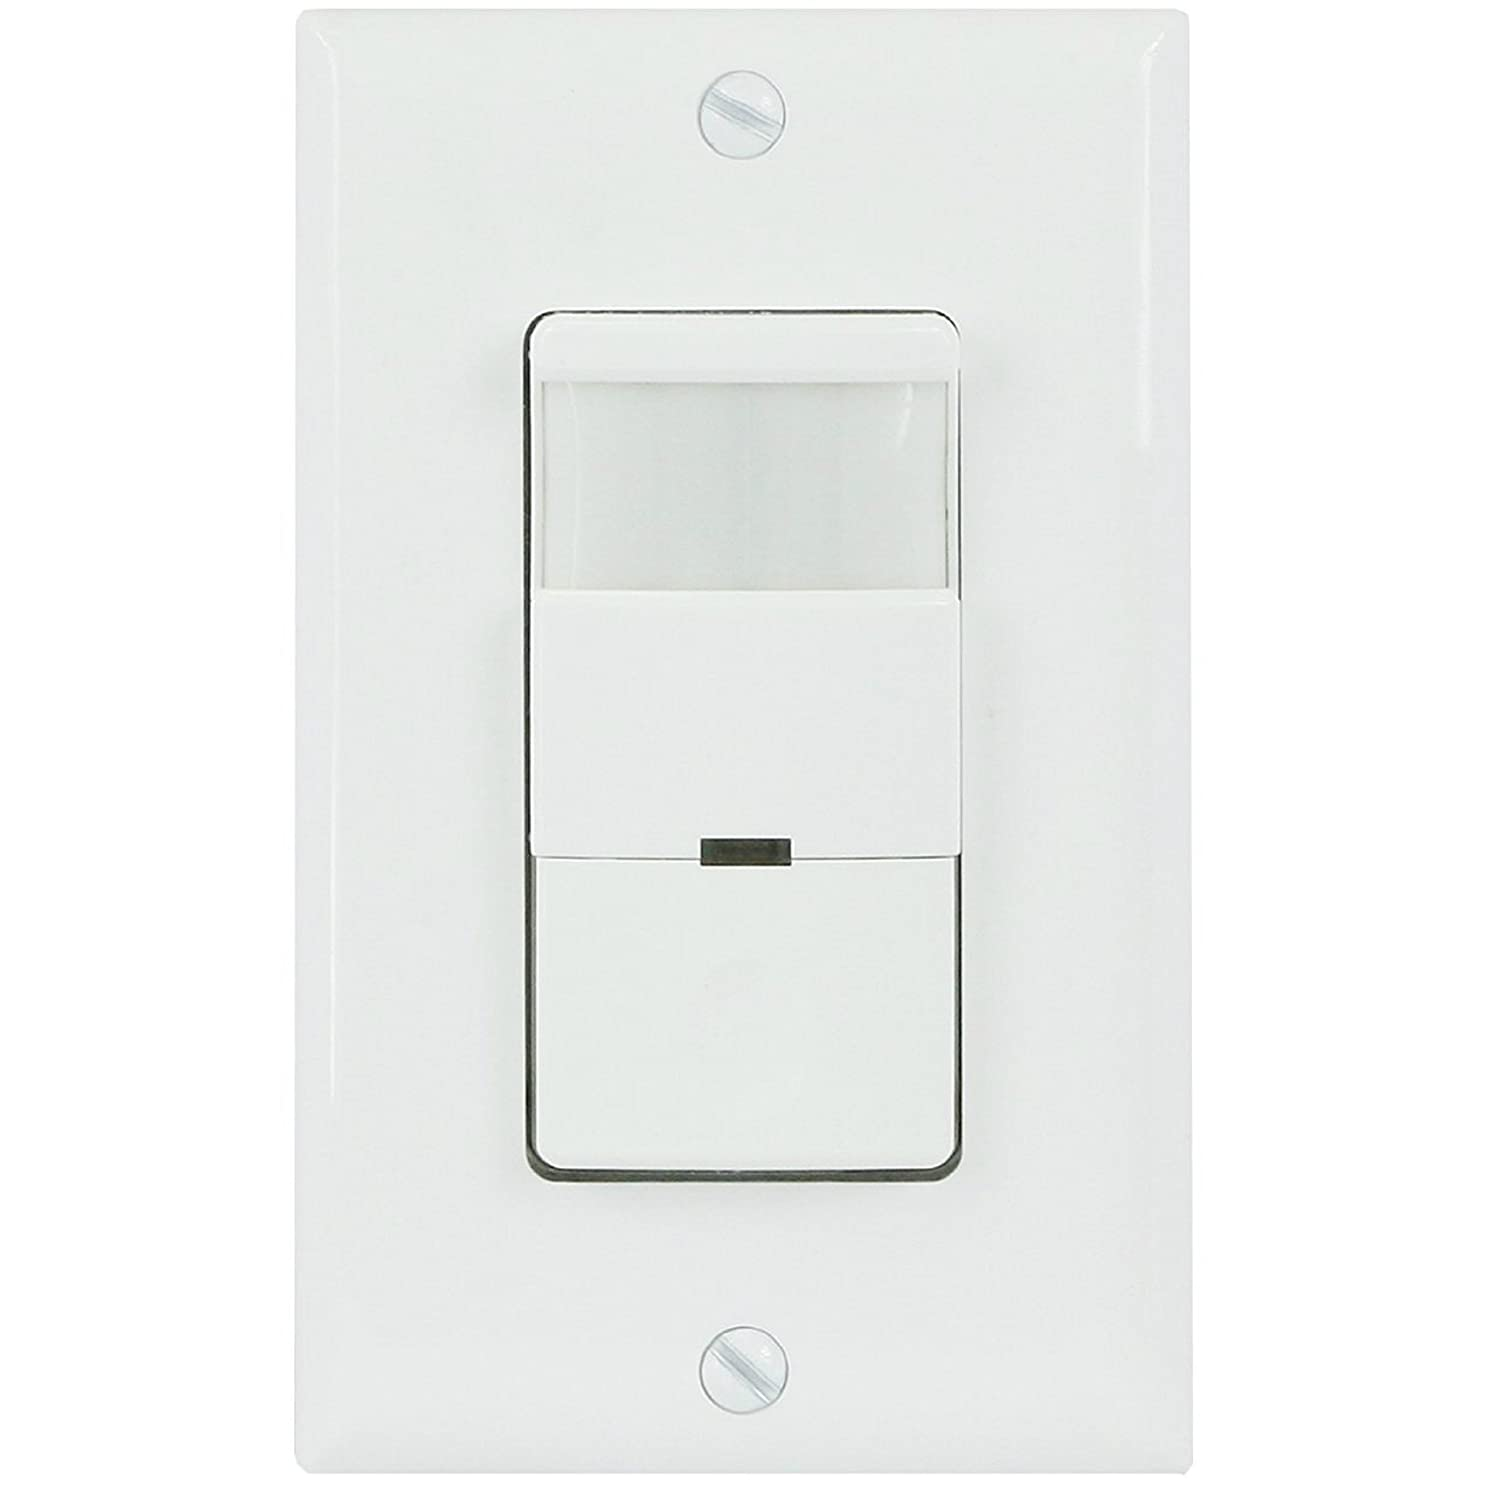 TOPGREENER TDOS5-W 2-in-1 PIR Occupancy/Vancancy Motion Sensor Switch, Single Pole, 180°, 500W **NEUTRAL WIRE REQUIRED**, White